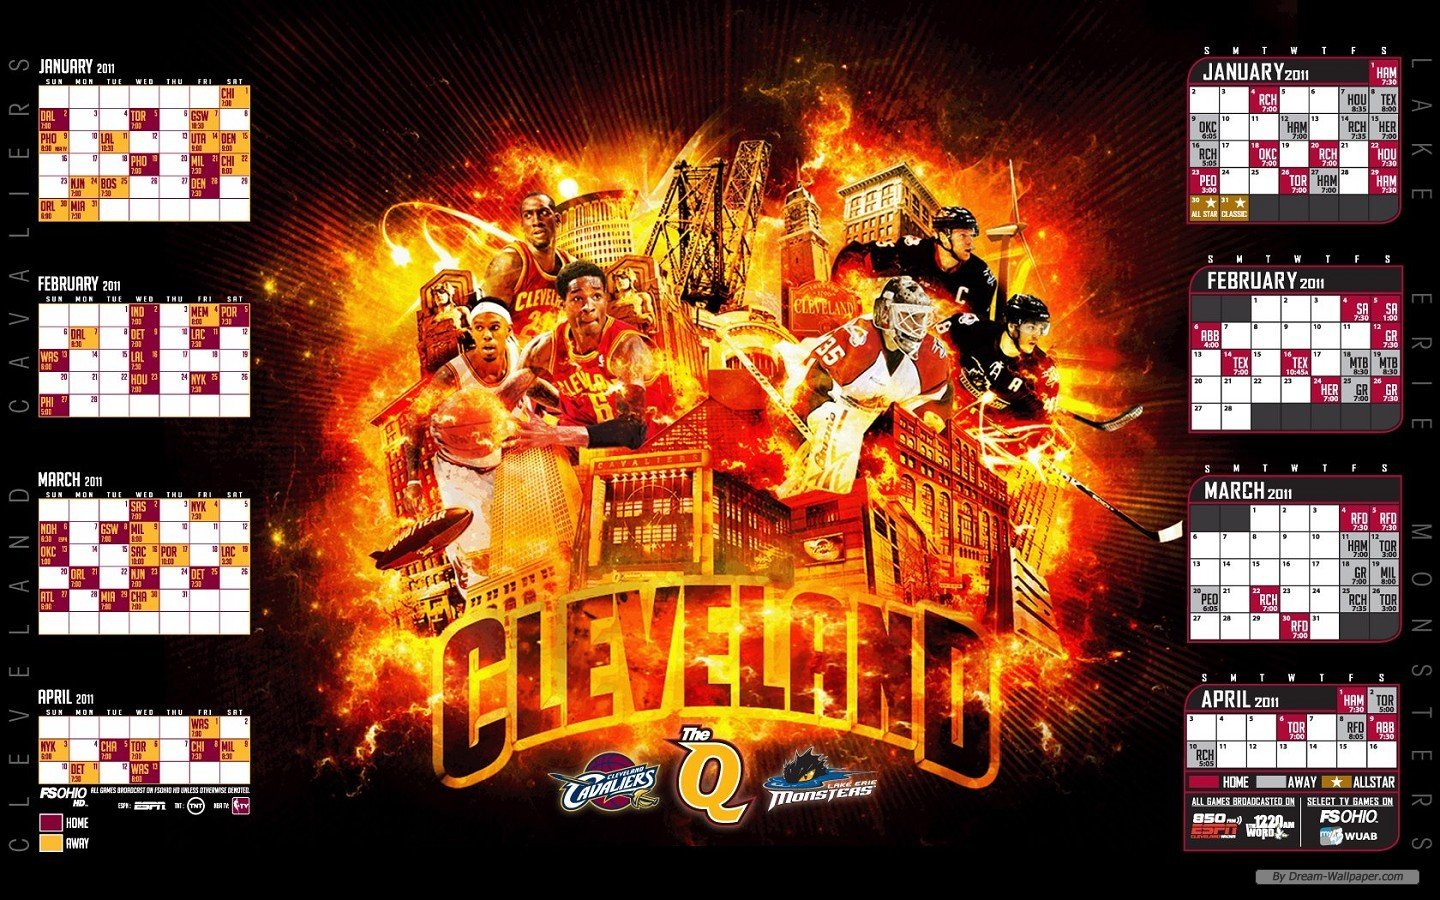 cleveland cavaliers wallpaper for backgrounds   Quotekocom 1440x900